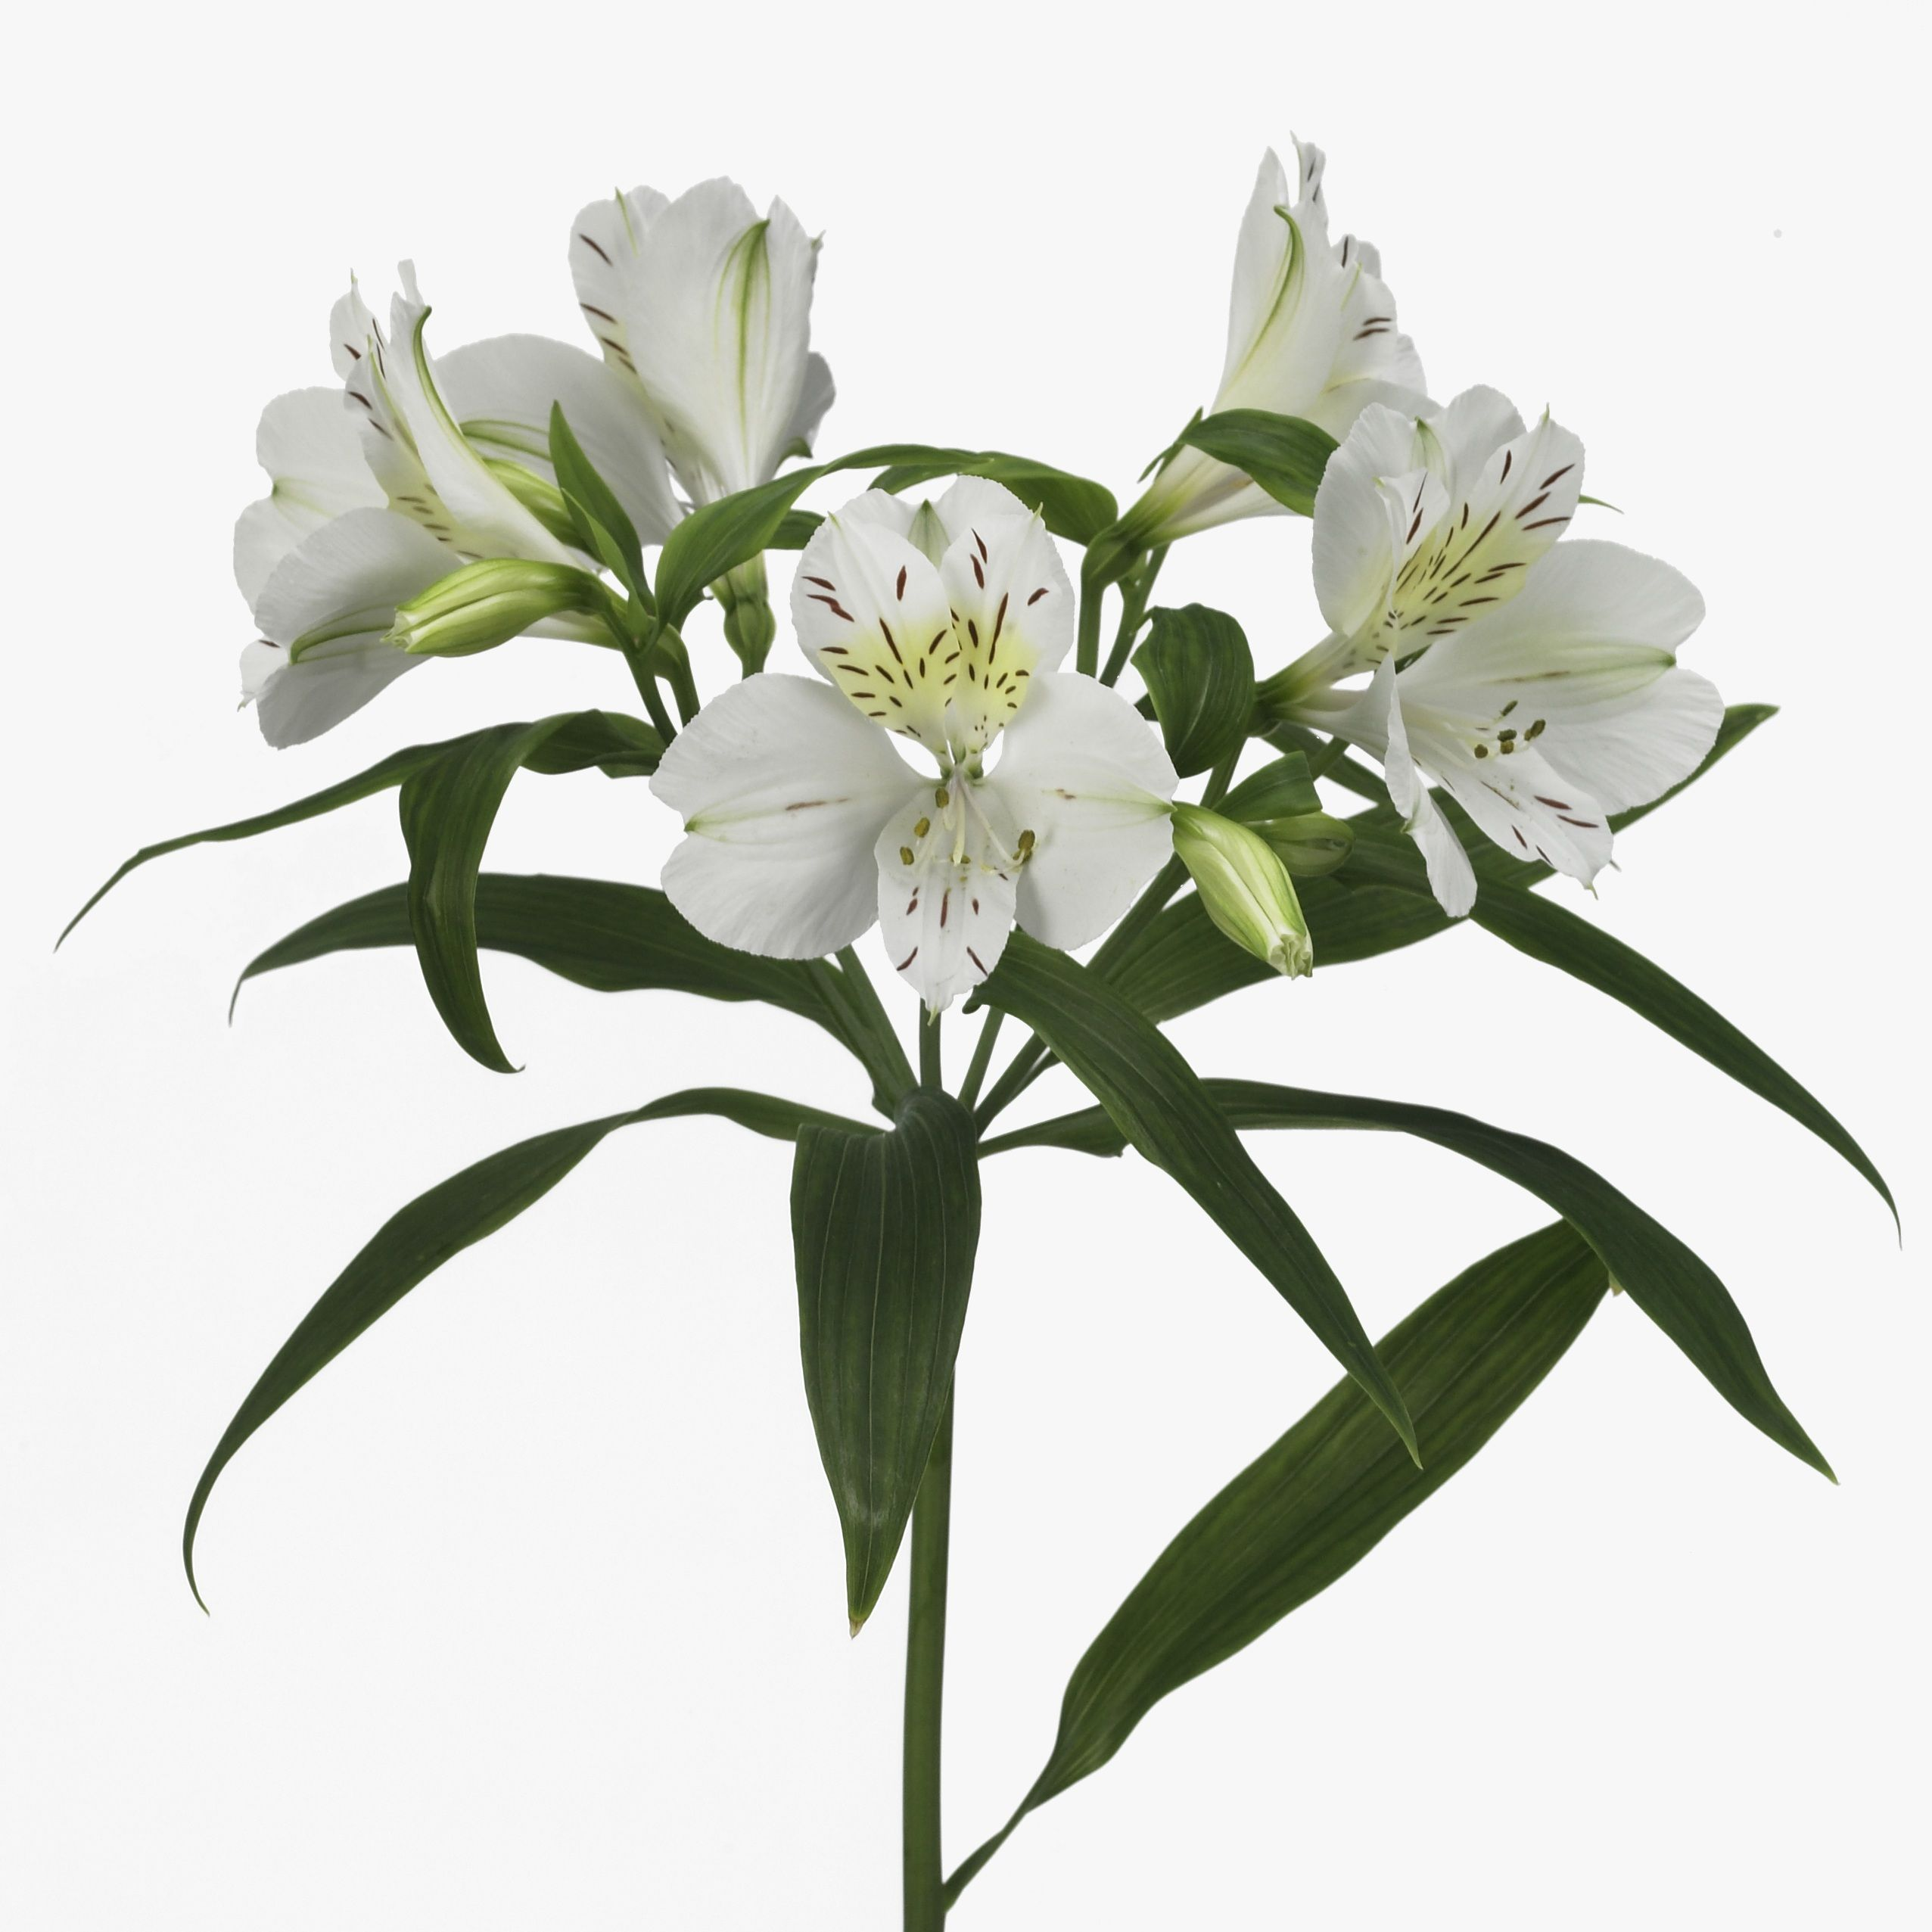 Alstroemeria villa massa photo hilverdakooij bridgette pinterest alstroemeria villa massa is a lovely white variety tall wholesaled in 10 stem wraps please note alstroemeria flowers take a few days to open mightylinksfo Gallery